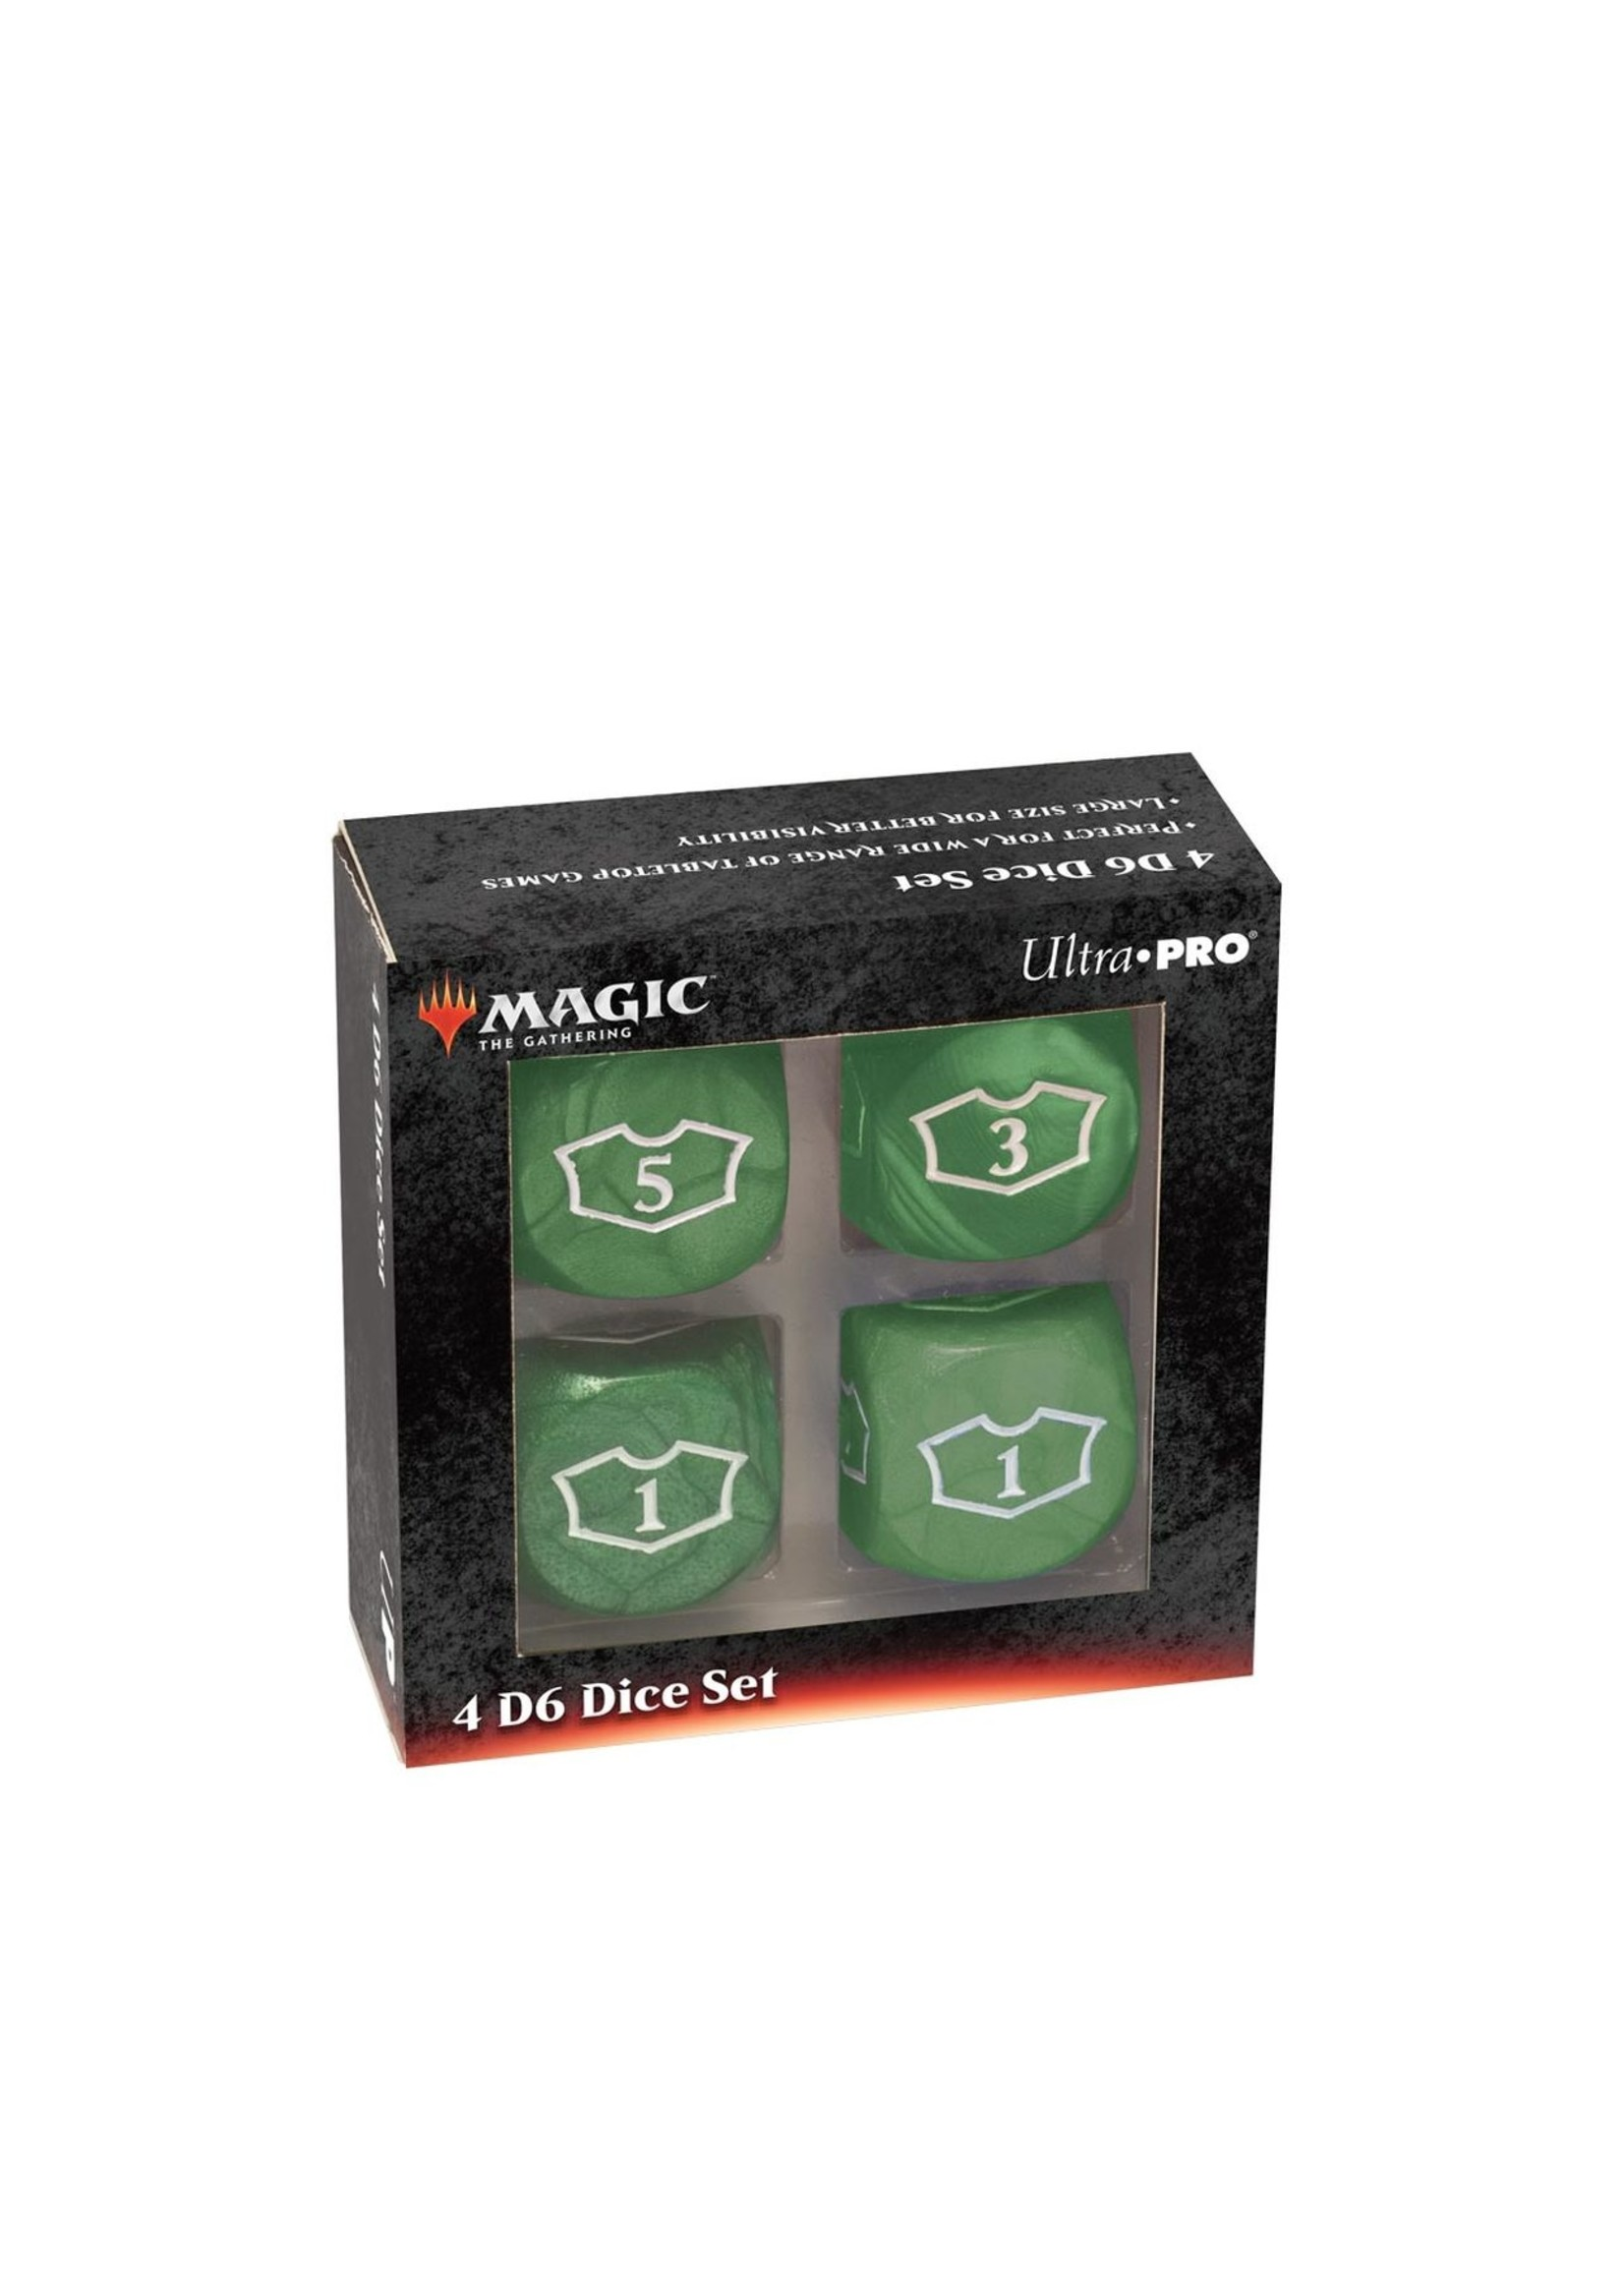 Magic the Gathering: Deluxe Loyalty Dice Set (4 D6 22mm) - Green